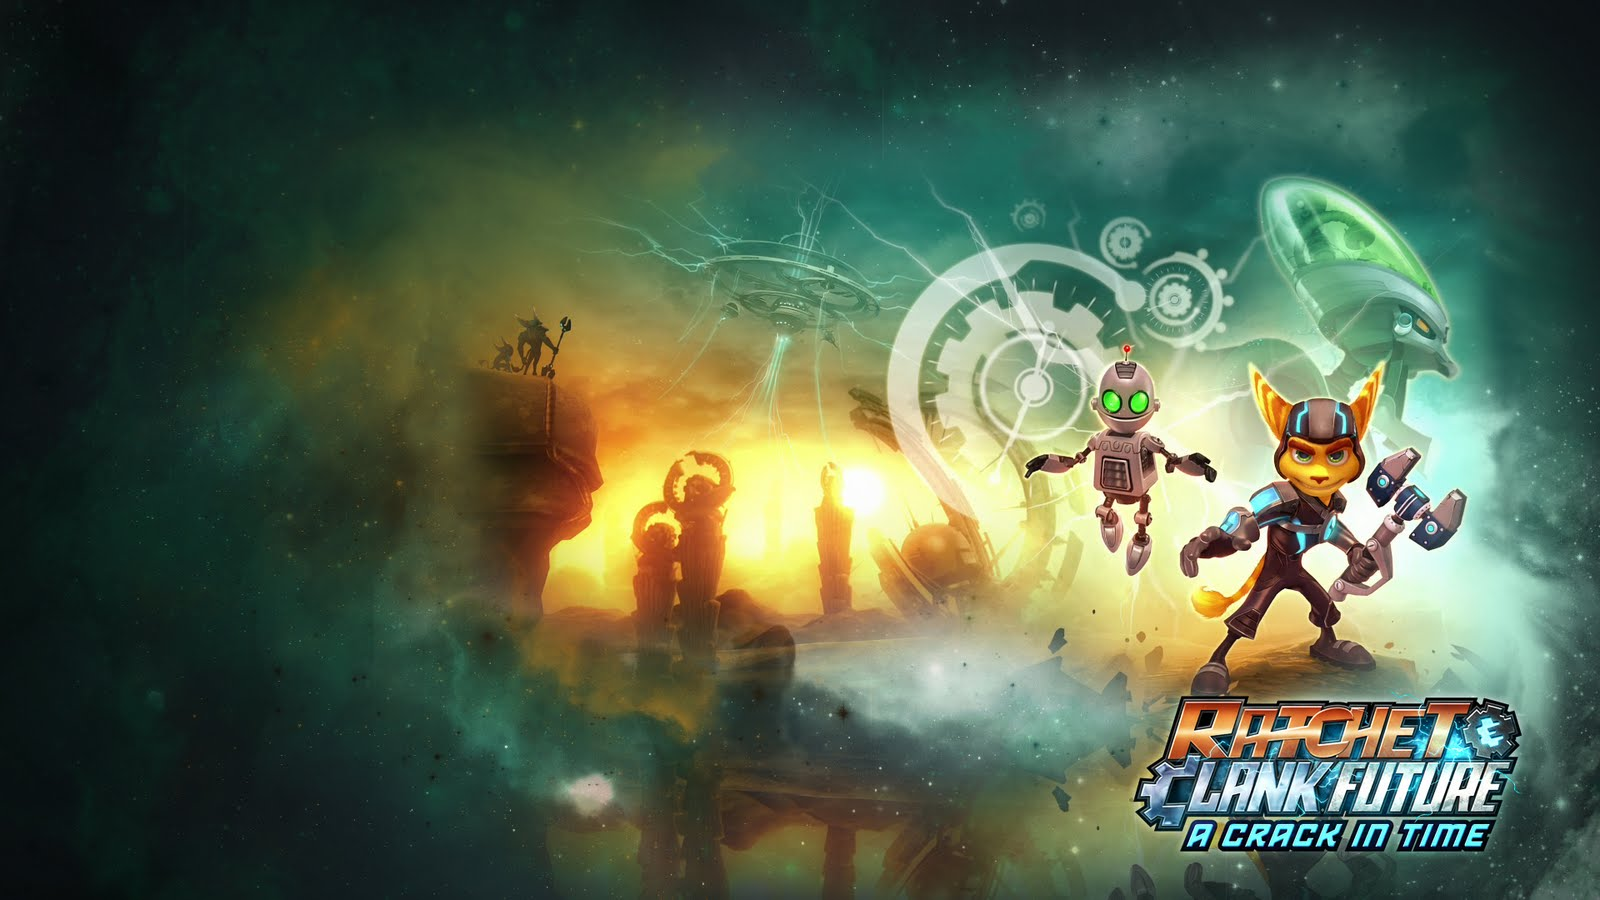 http://2.bp.blogspot.com/_PoD37moNsB8/SxQA8shxFQI/AAAAAAAAACo/chPumvjmdkE/s1600/ratchet-and-clank-future-a-crack-in-time-wallpaper.jpg